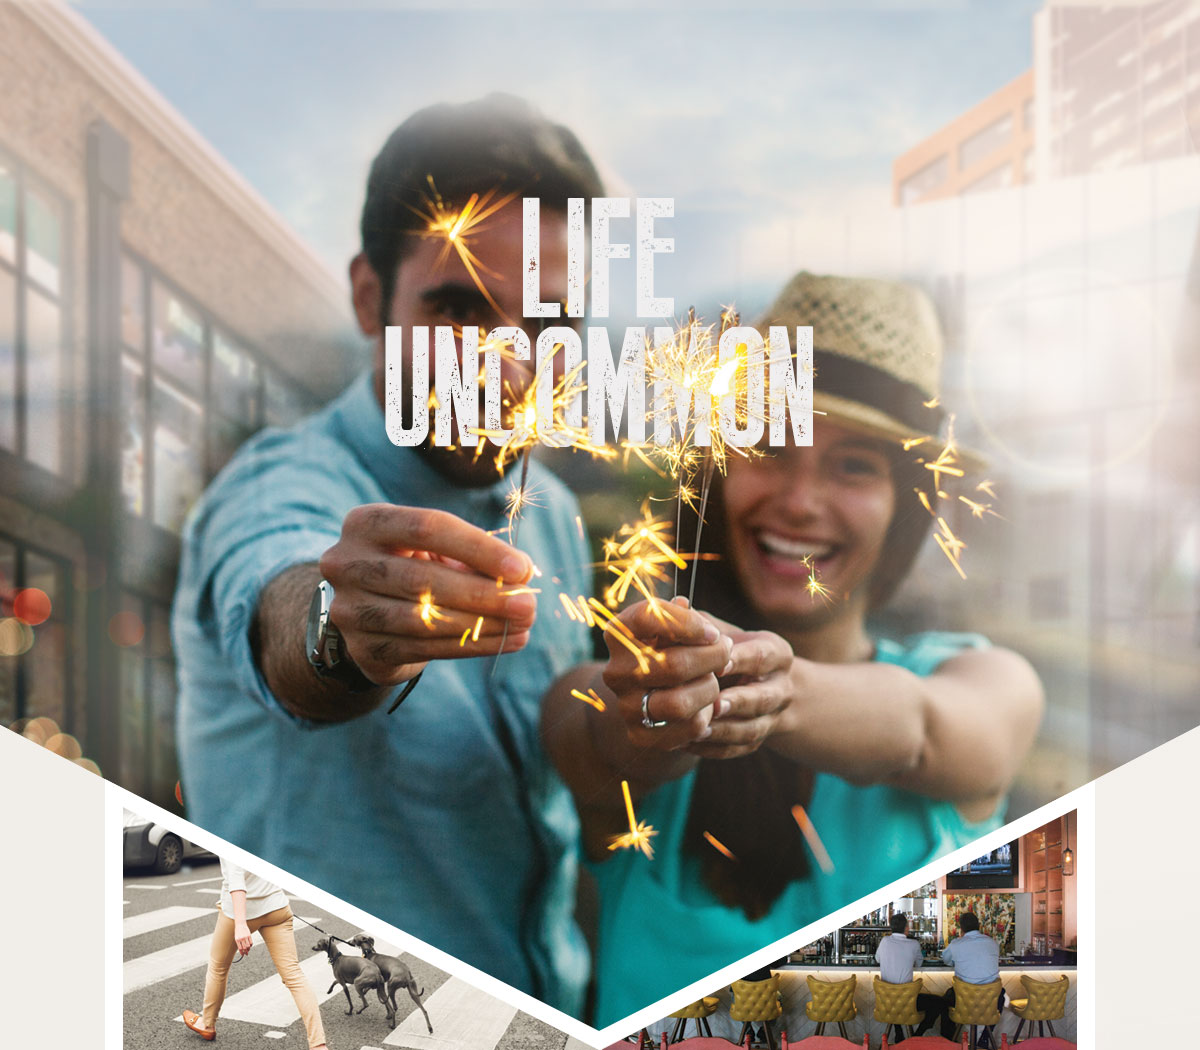 Life uncommon: photo of happy couple holding sparklers, Woman crossing the street with two dogs, Two men at a bar watching sports